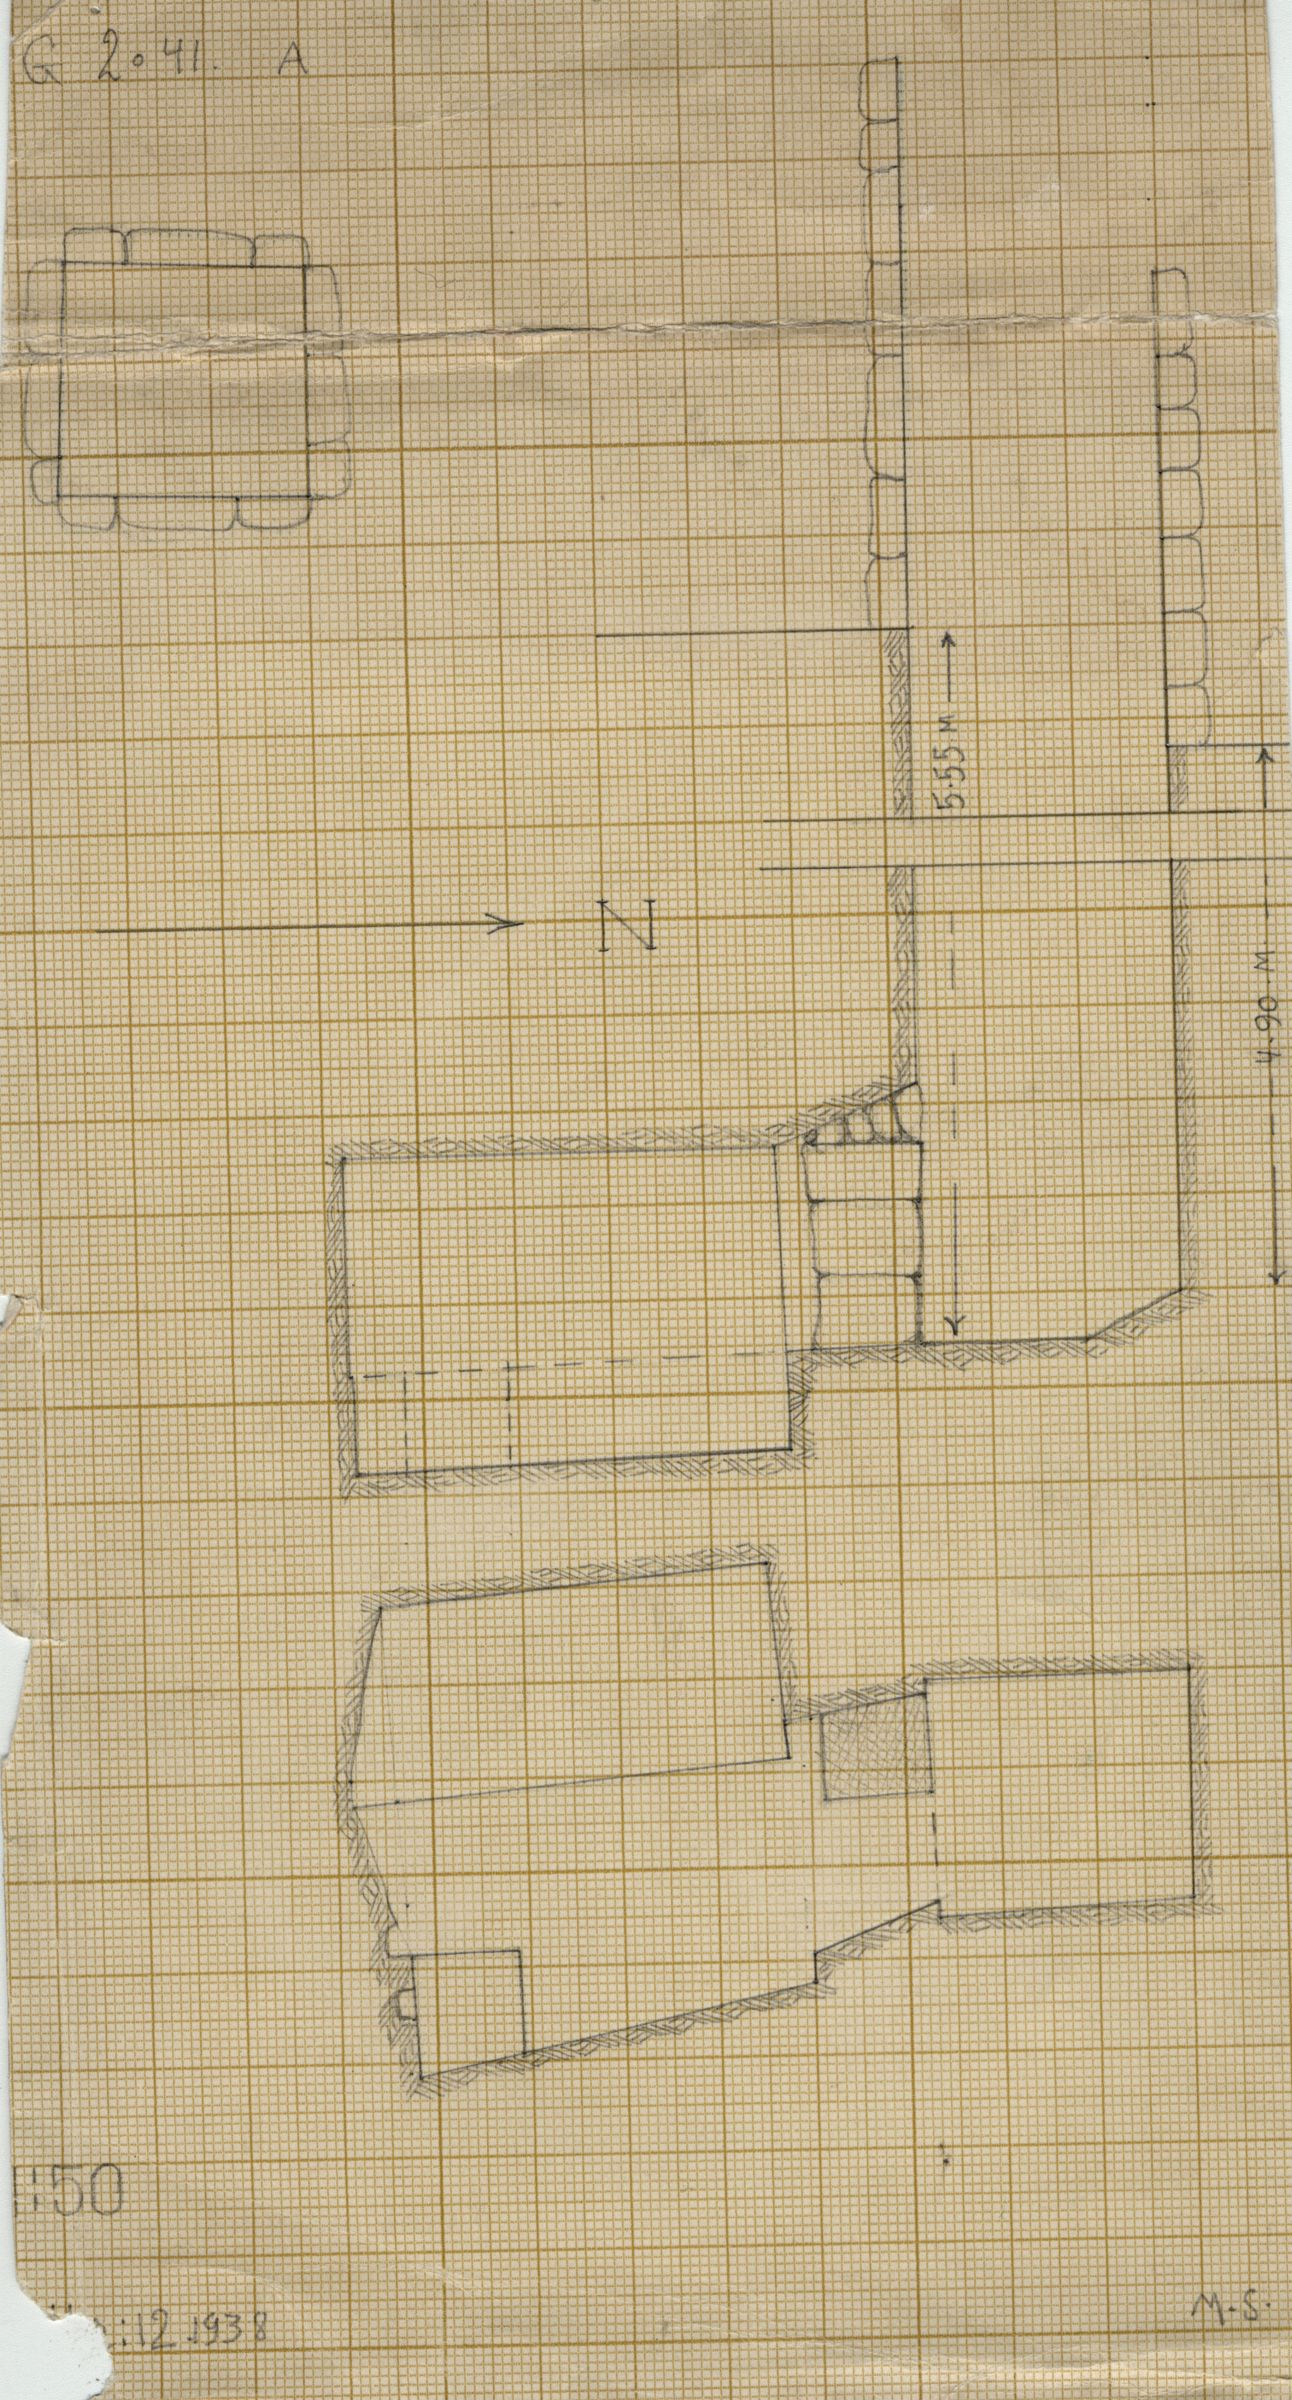 Maps and plans: G 2041, Shaft A